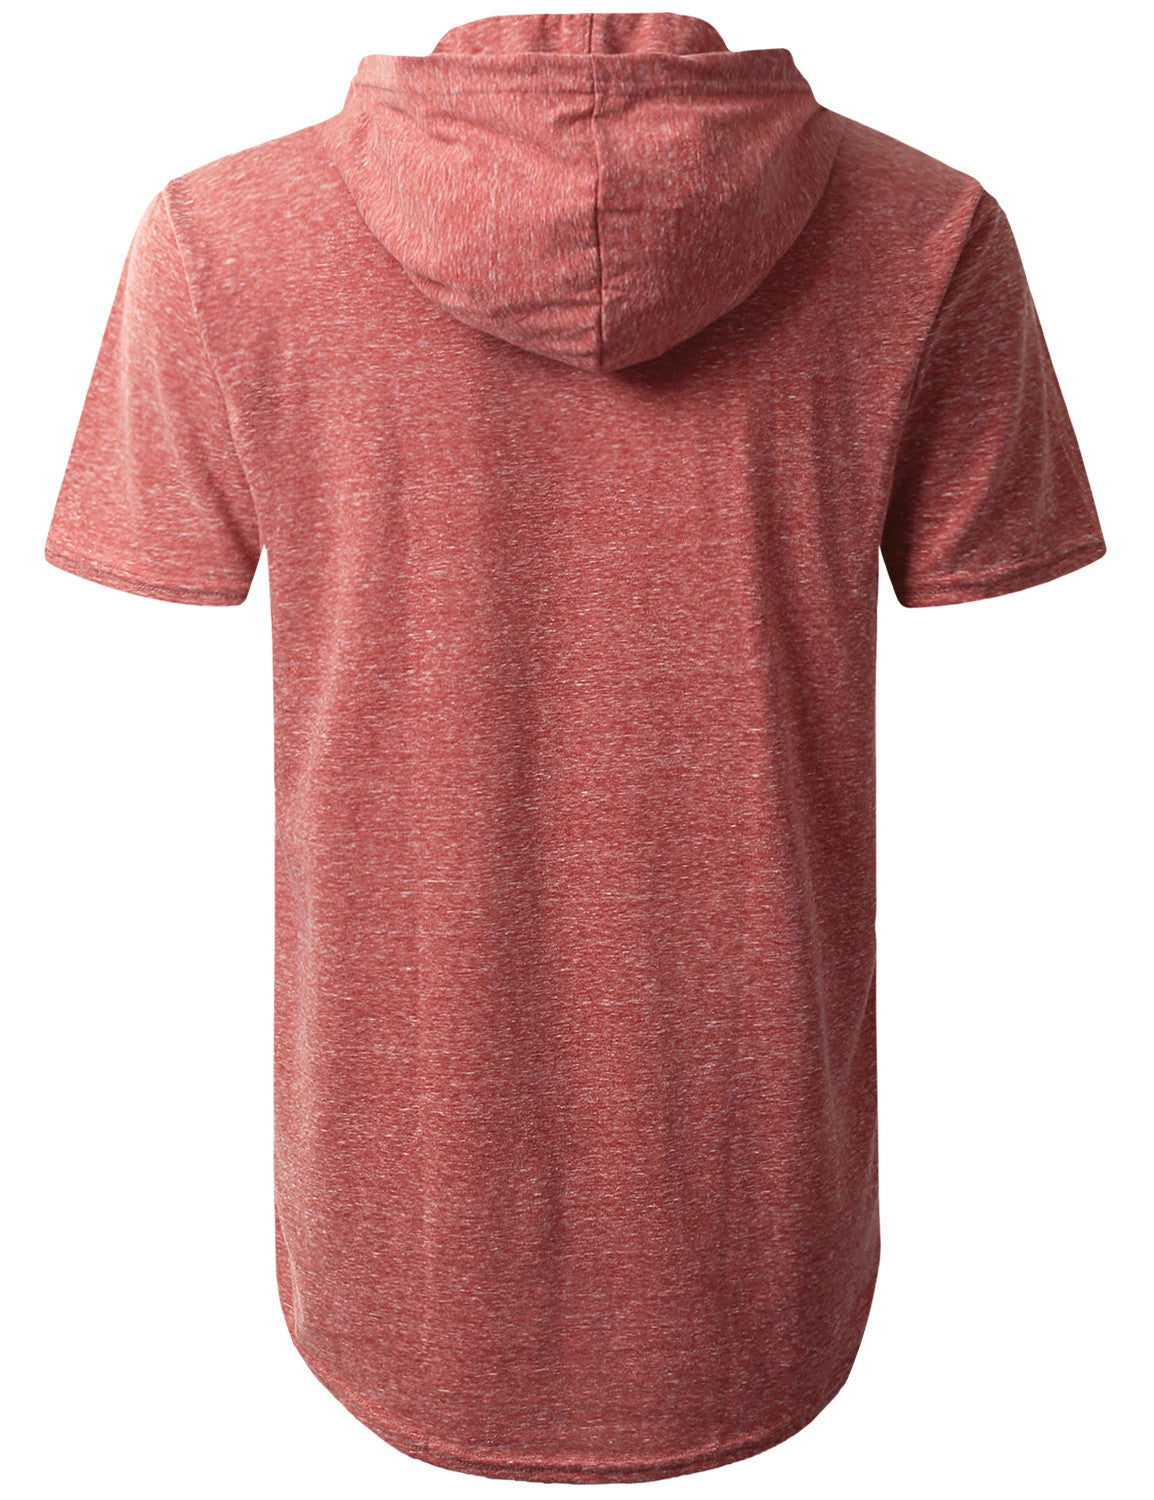 LTBURGUNDY Melange Pocket Short Sleeve Hoodie - URBANCREWS